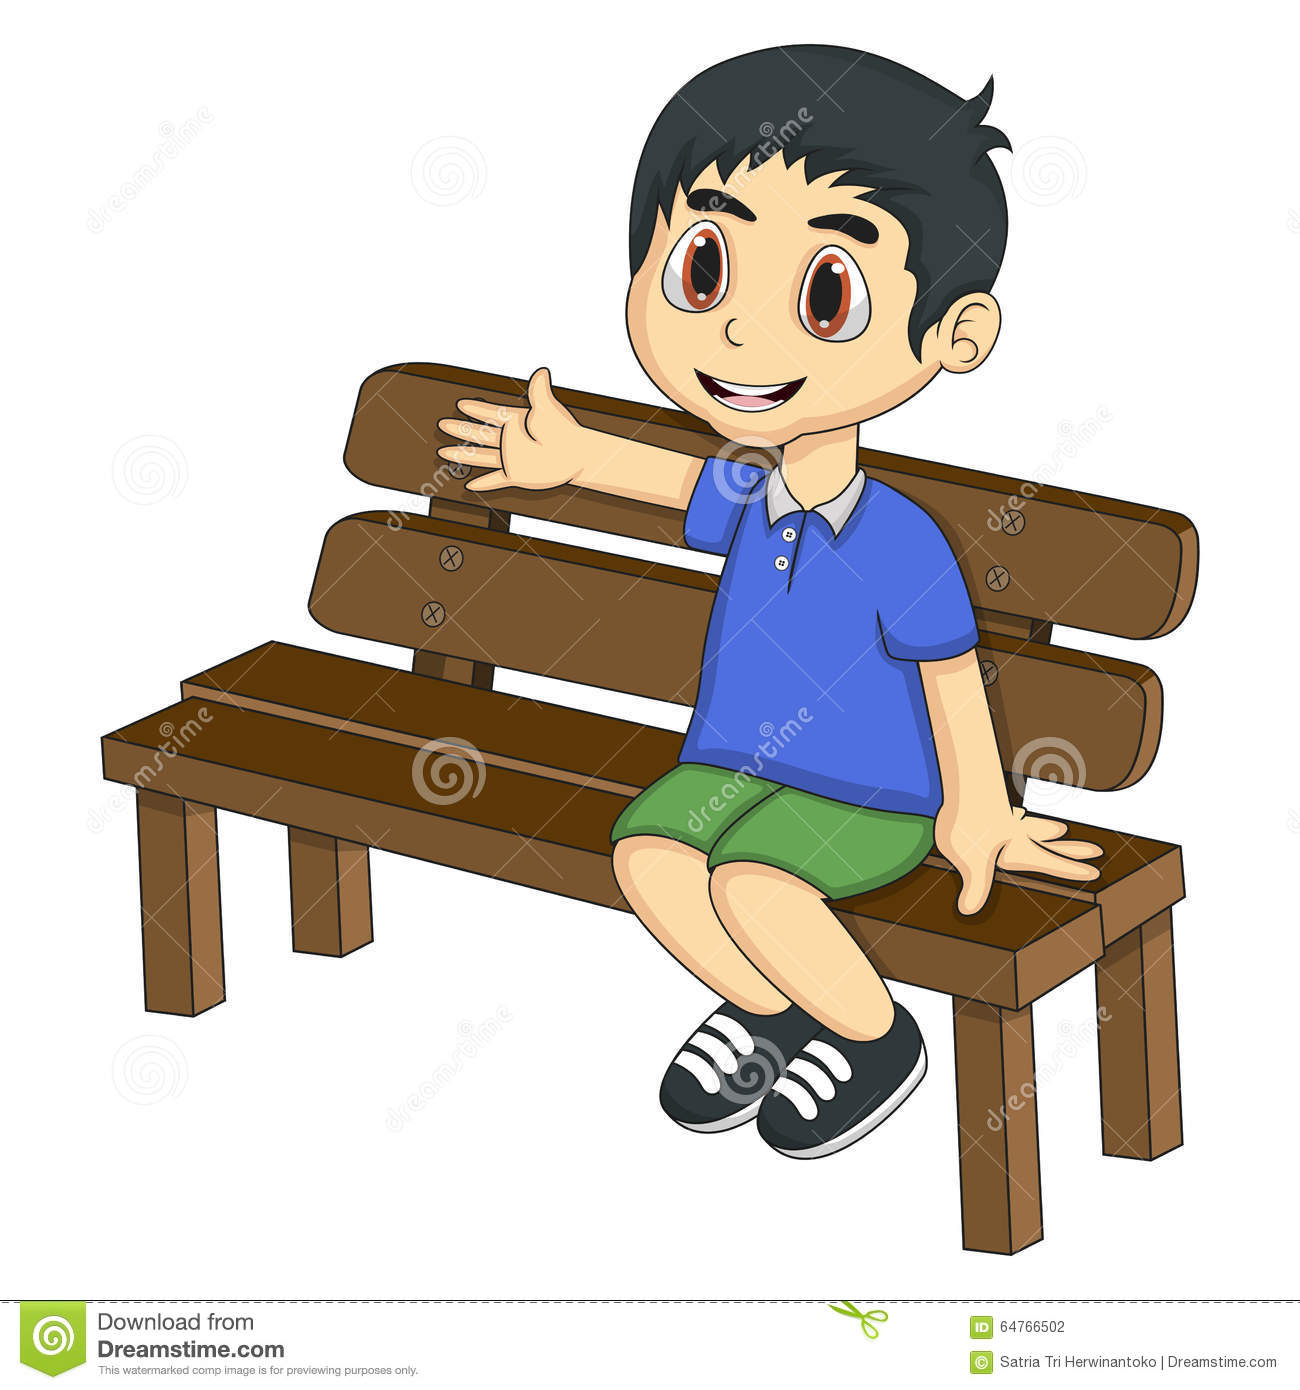 Kid pointing at himself clipart clipground - Cartoon girl sitting alone ...